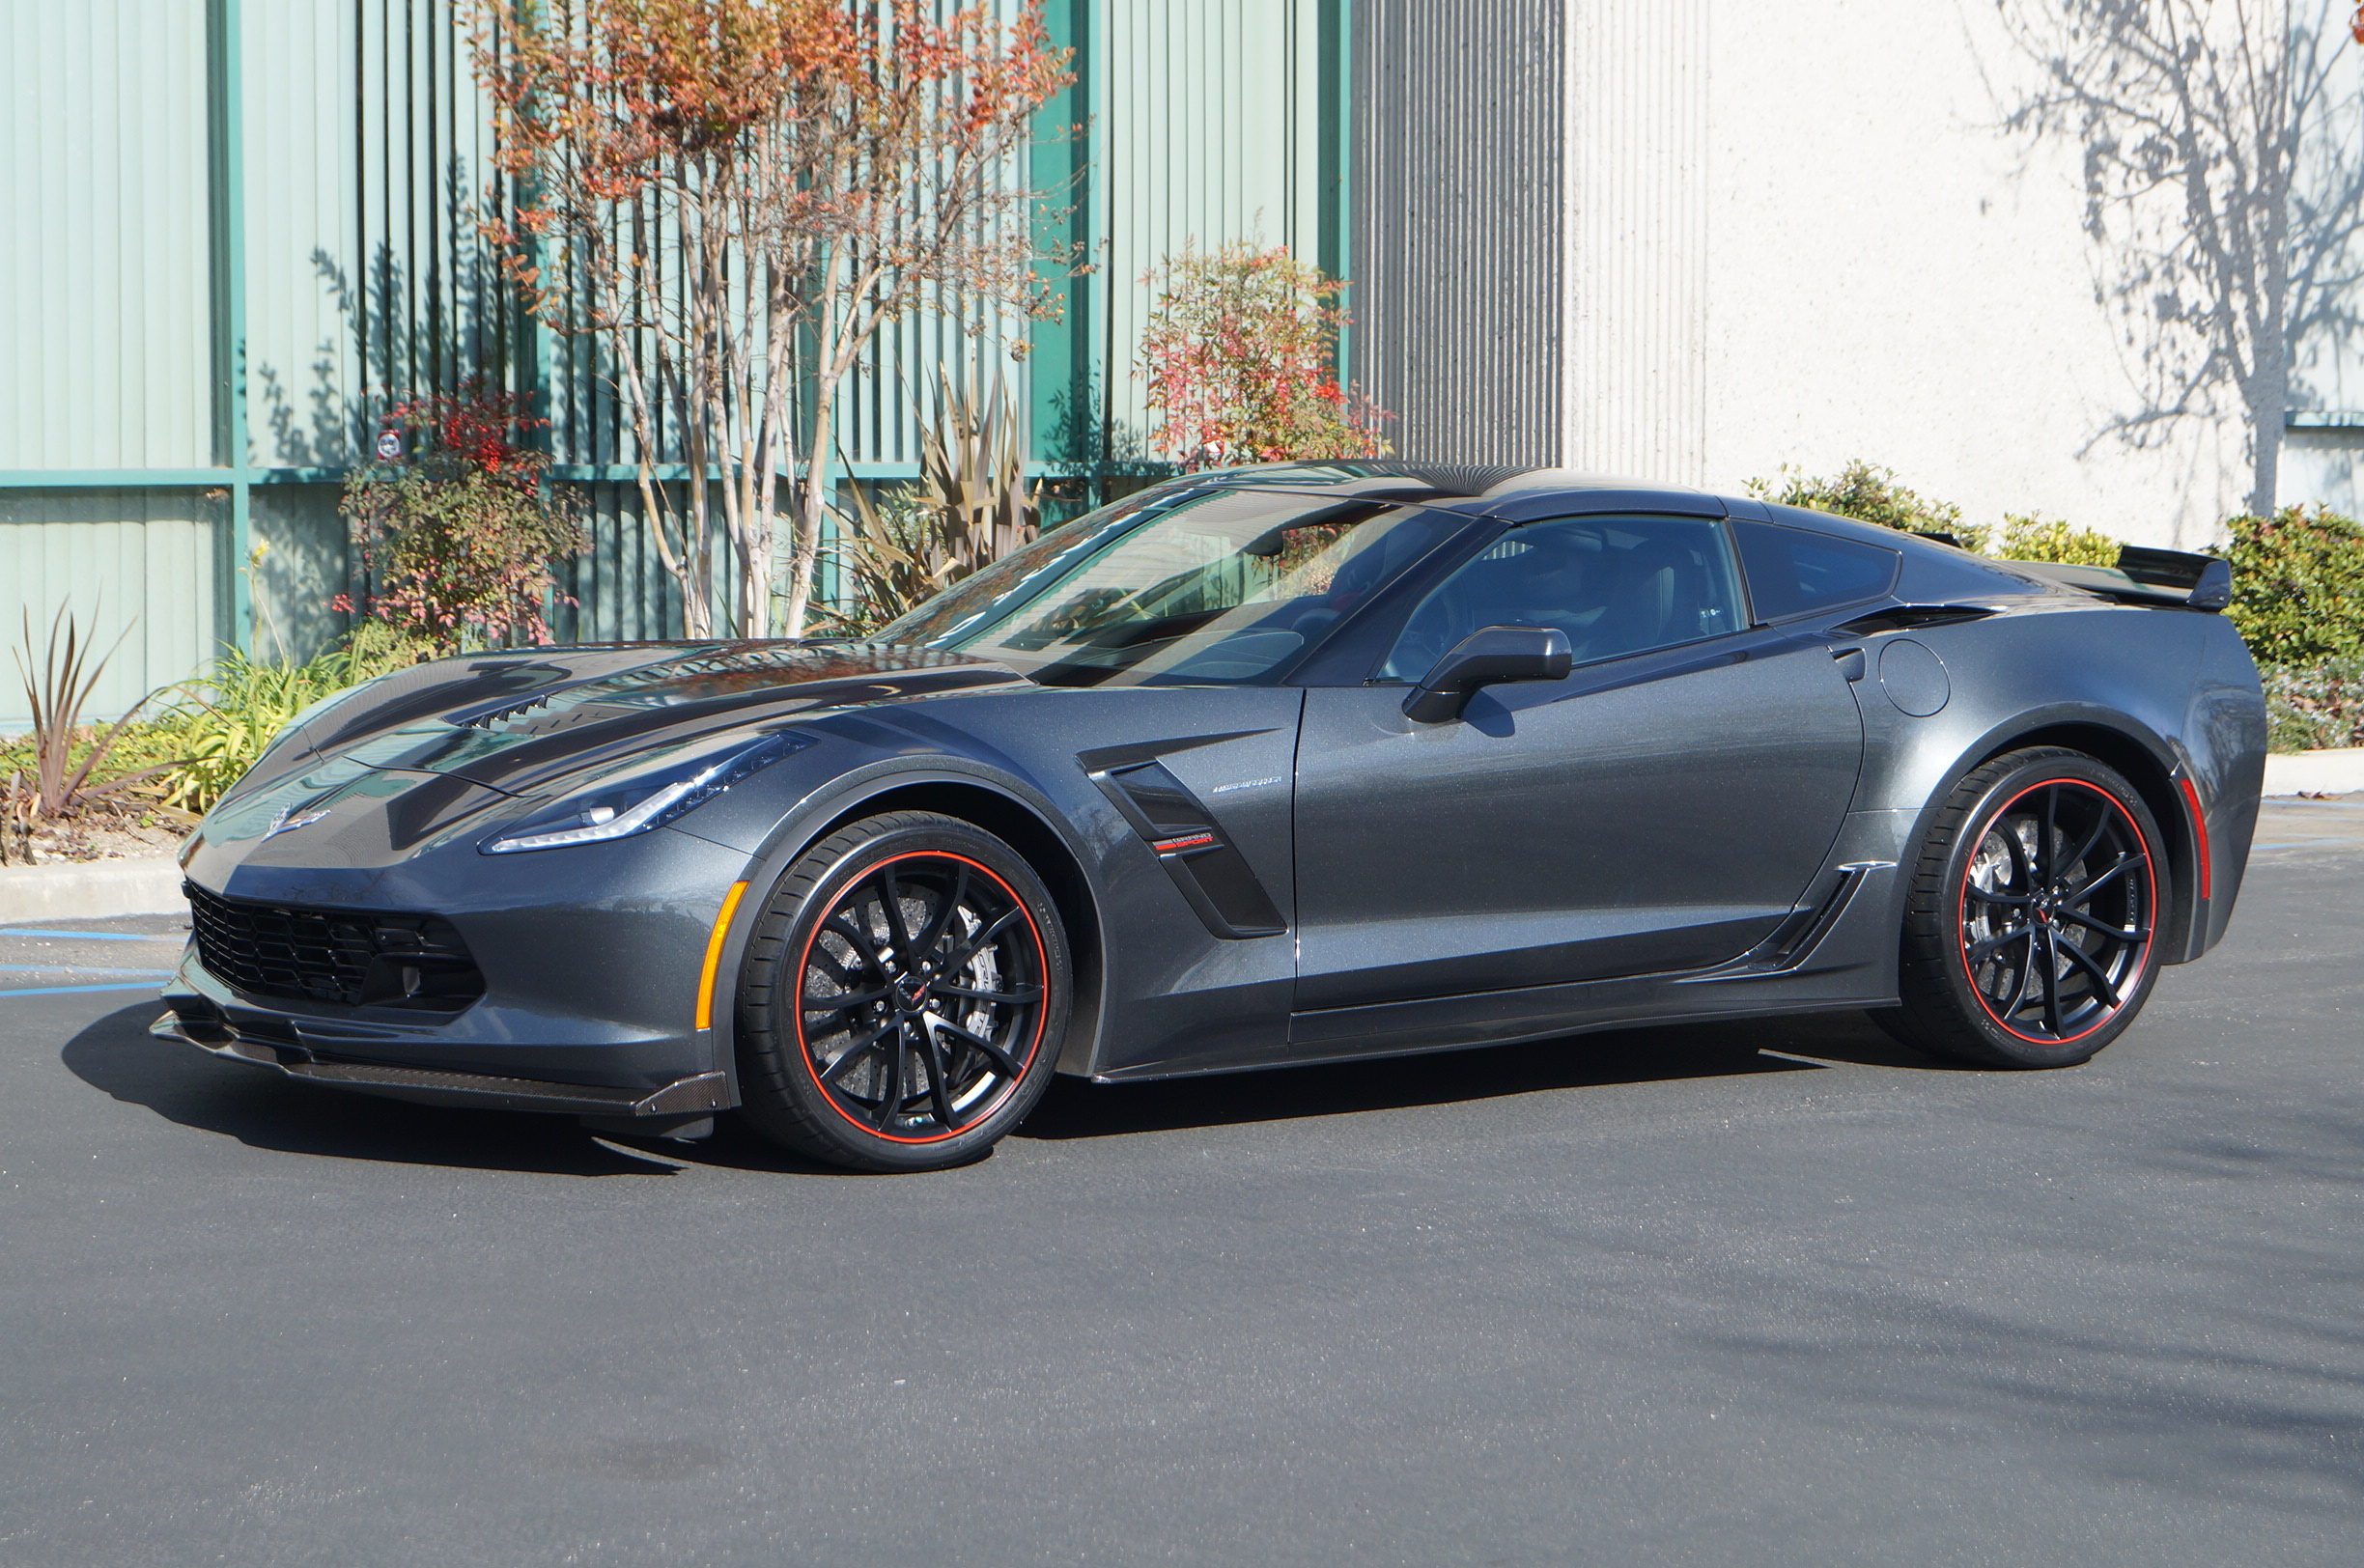 Dark Gray 2017 Chevrolet Corvette Grand Sport with 700 HP Lingenfelter Performance Package